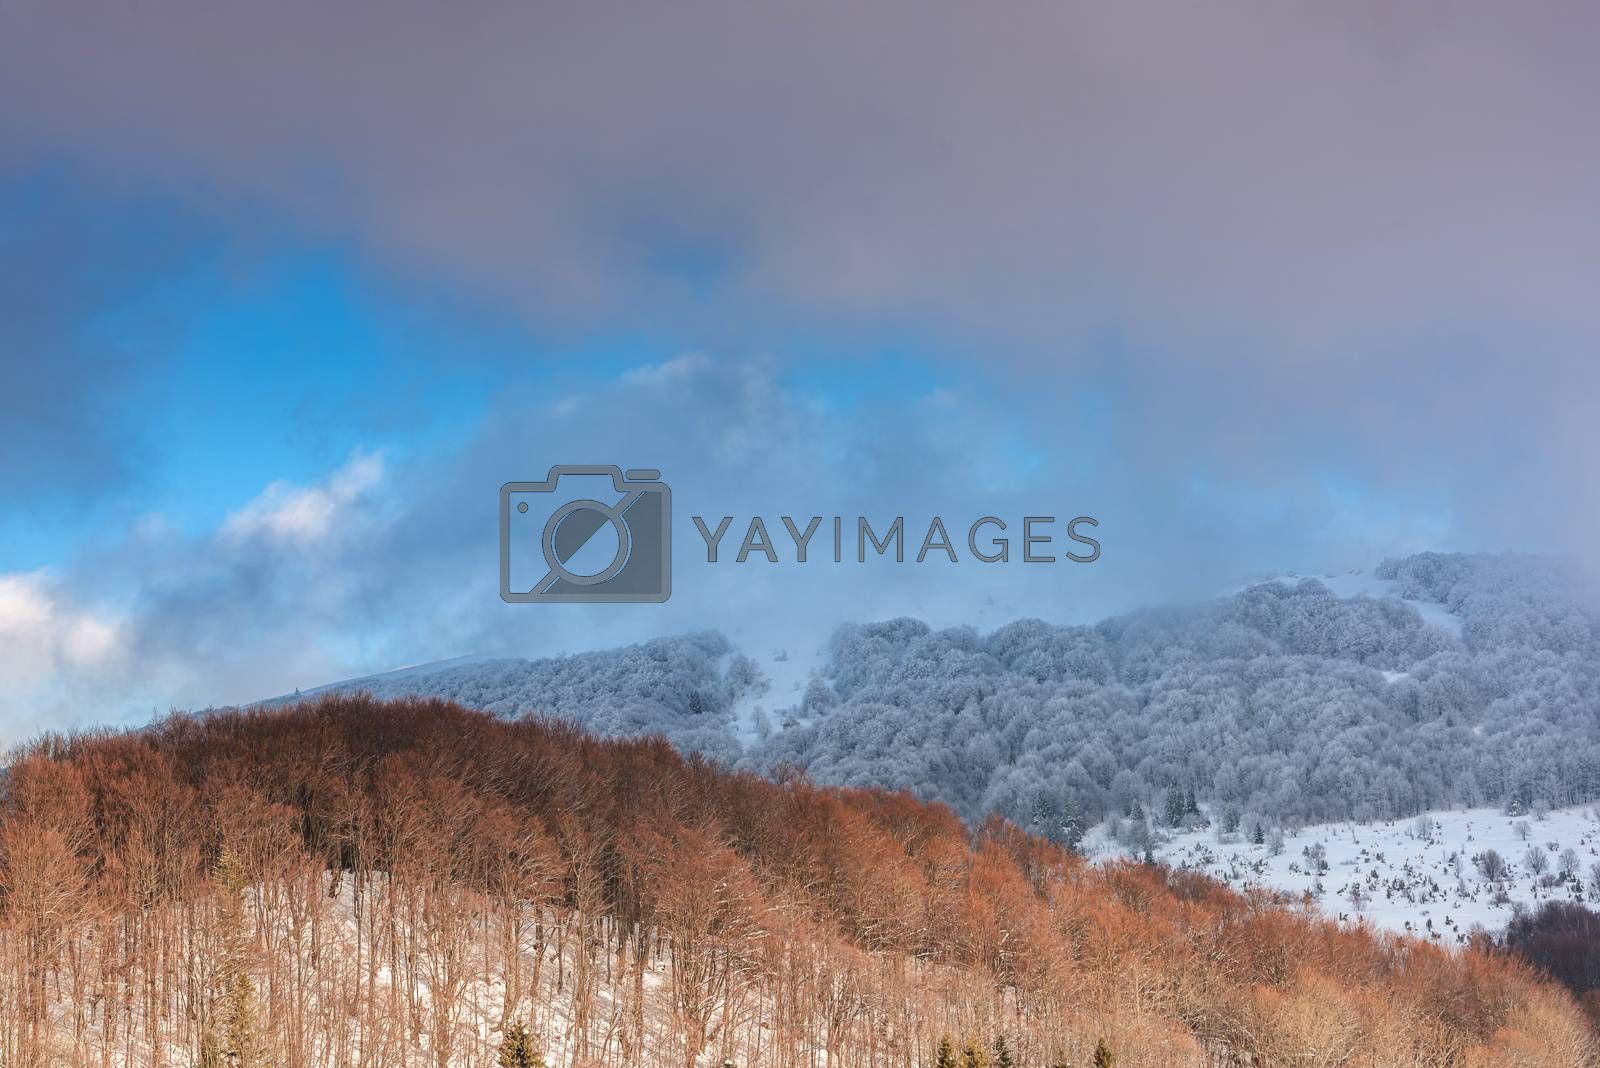 Dramatic and Moody Image of Weather in Mountains at Winter Time by merc67